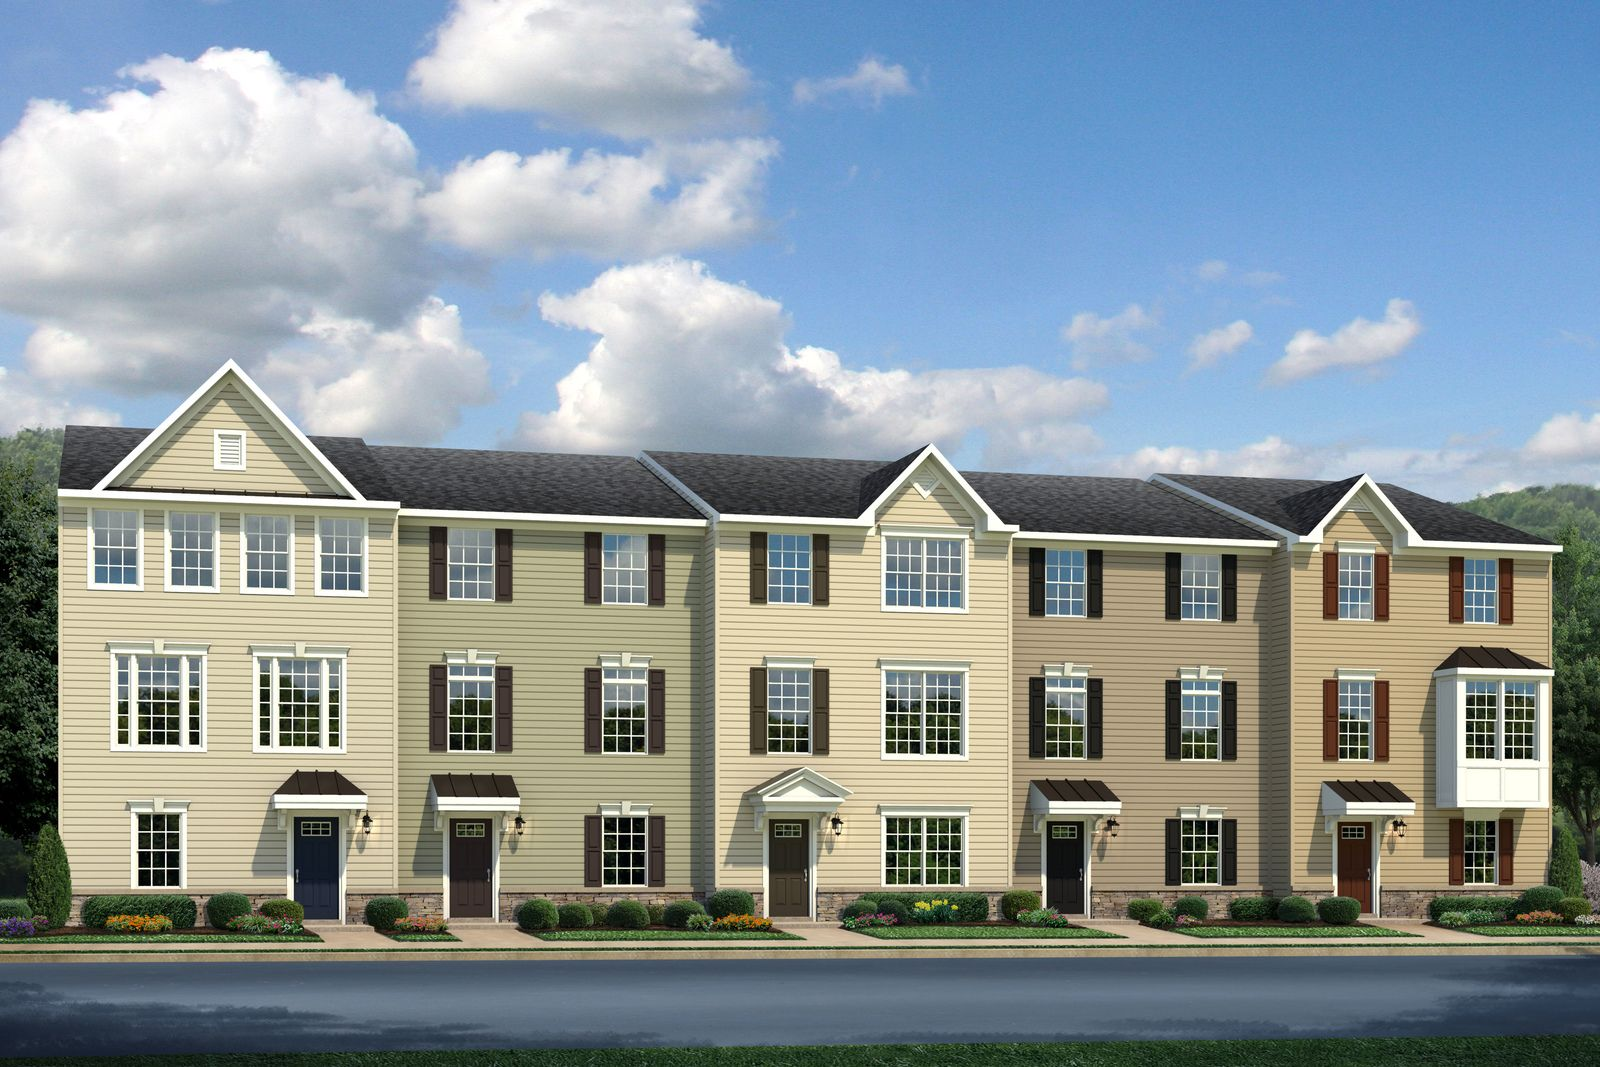 VALLEY RUN - GARAGE TOWNHOMES COMING SOON TO FREDERICKSBURG FROM THE MID $300S!:Stop renting and own a brand new, low maintenance garage townhome 3 miles from downtown Fredericksburg & 1 mile to 95! Join the VIP List for access to floorplans, VIP events andmore!